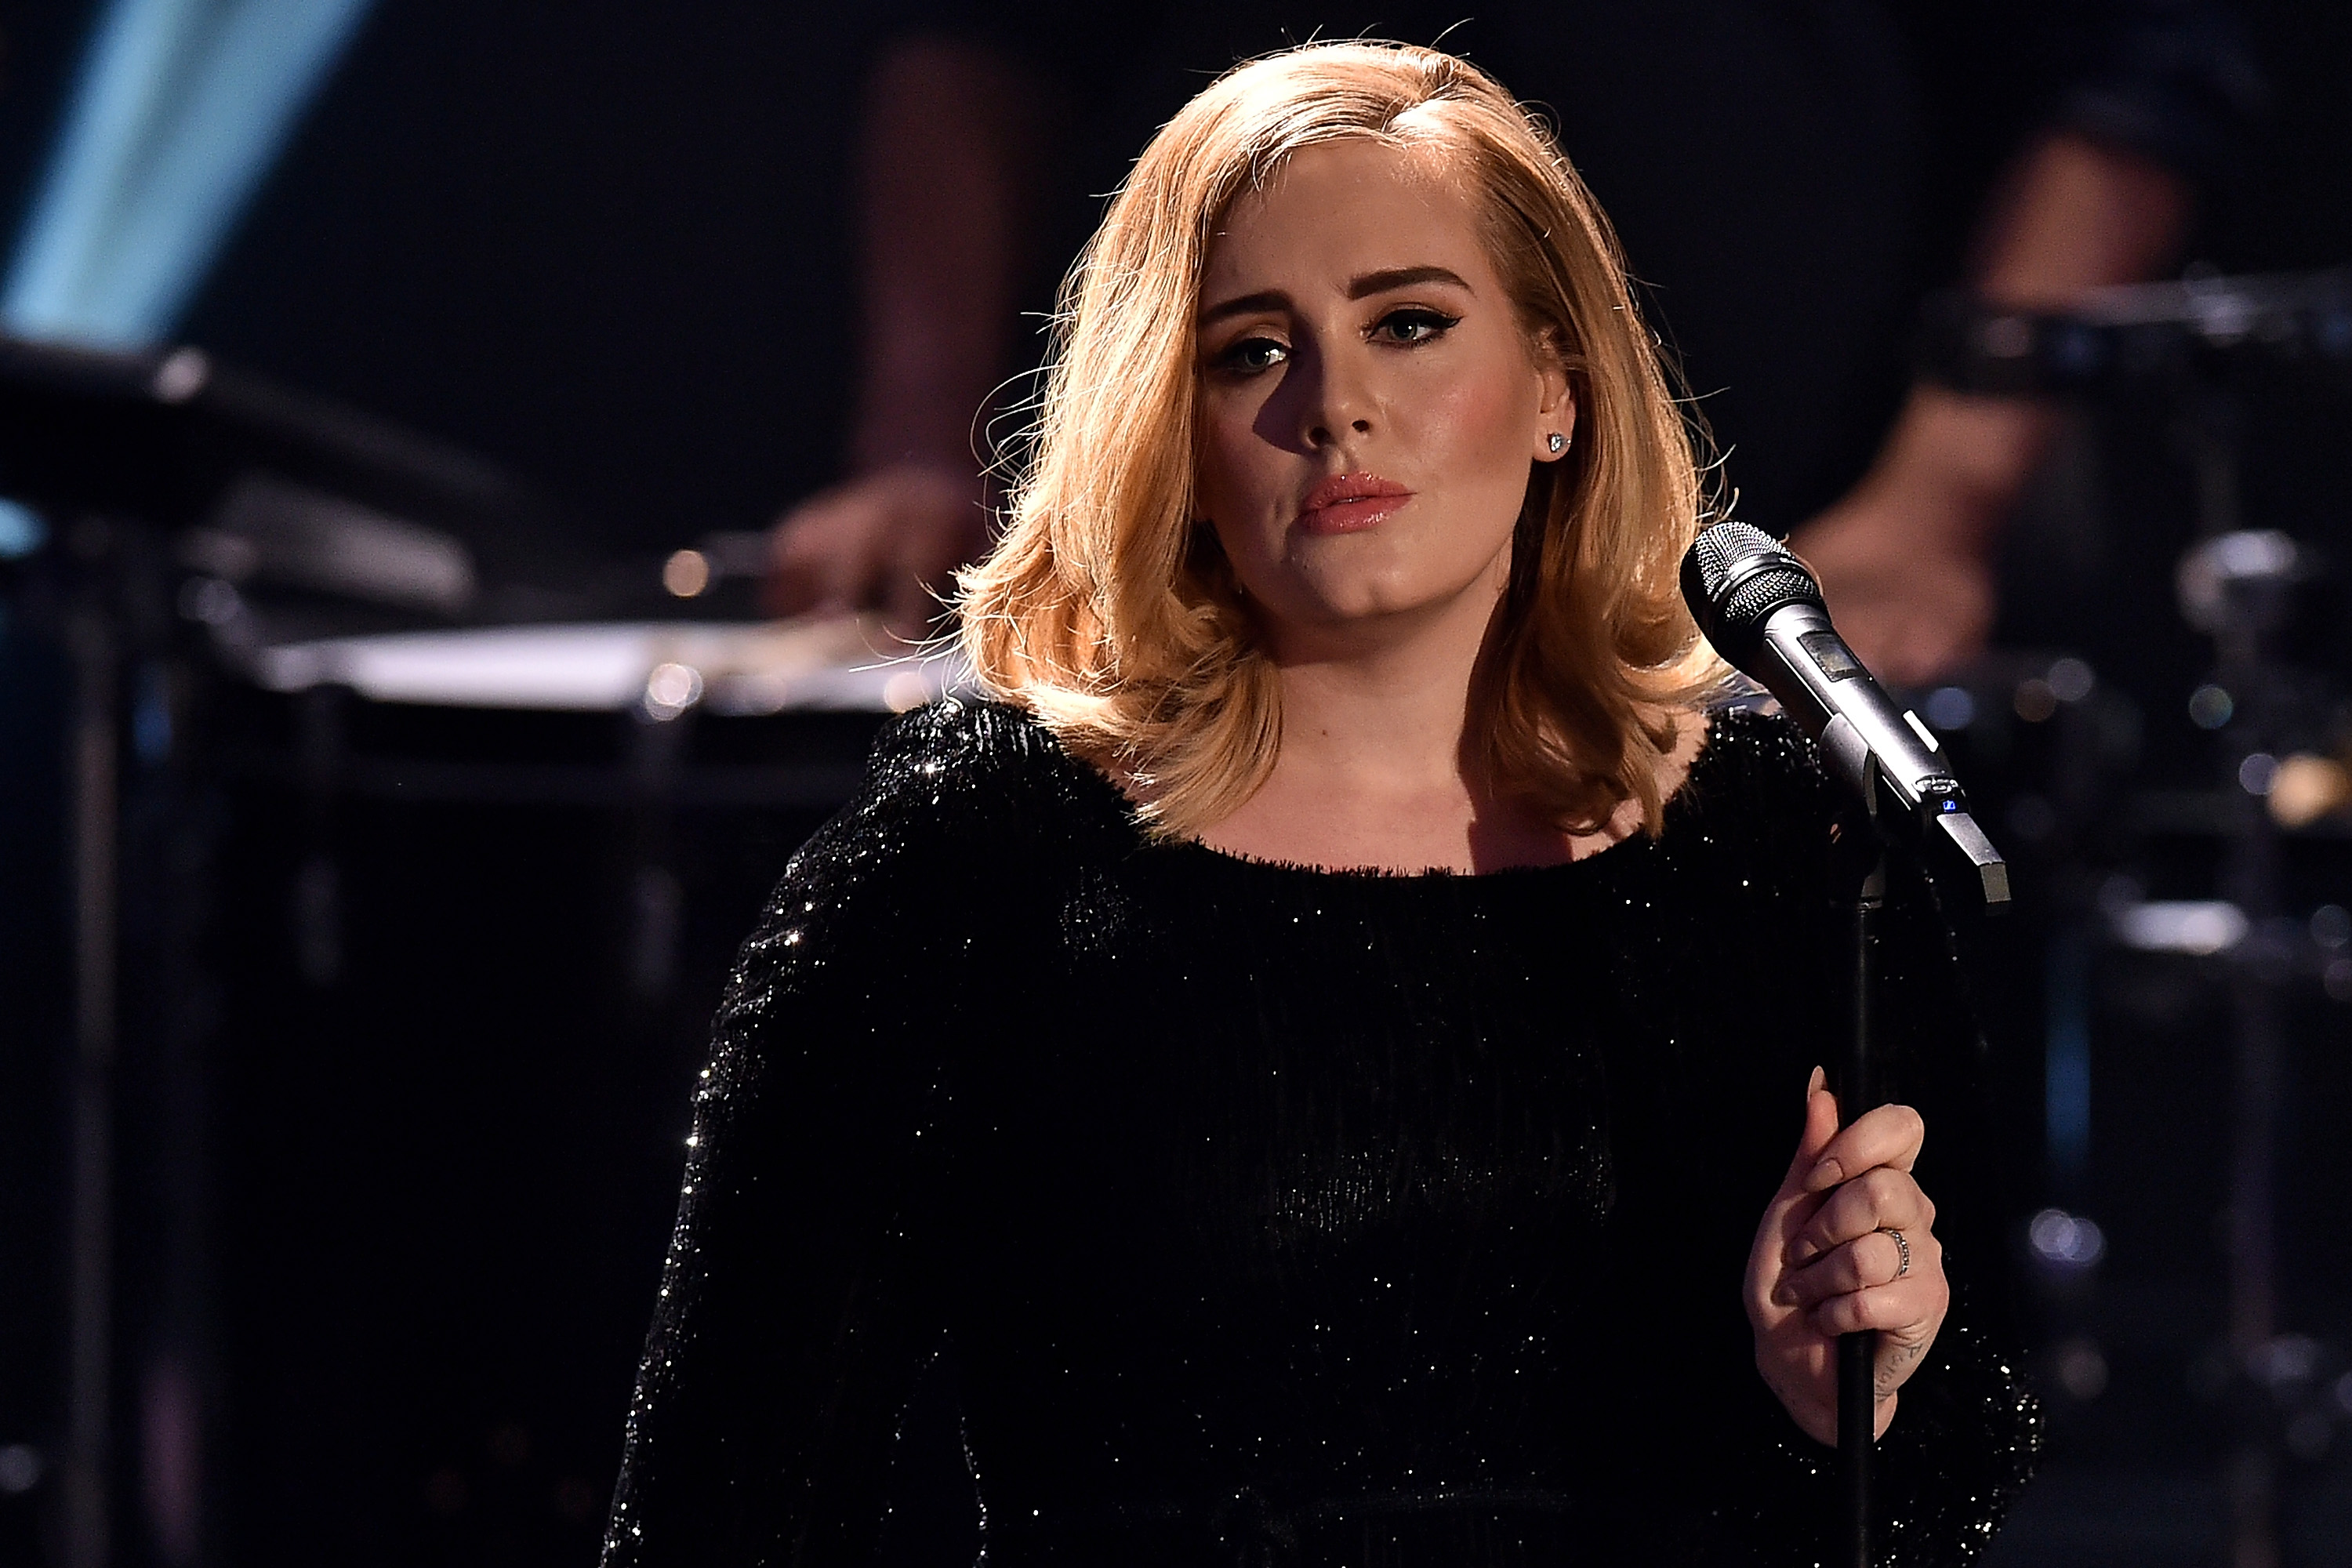 10 Million People Tried to Buy Tickets for Adele's U.S. Tour